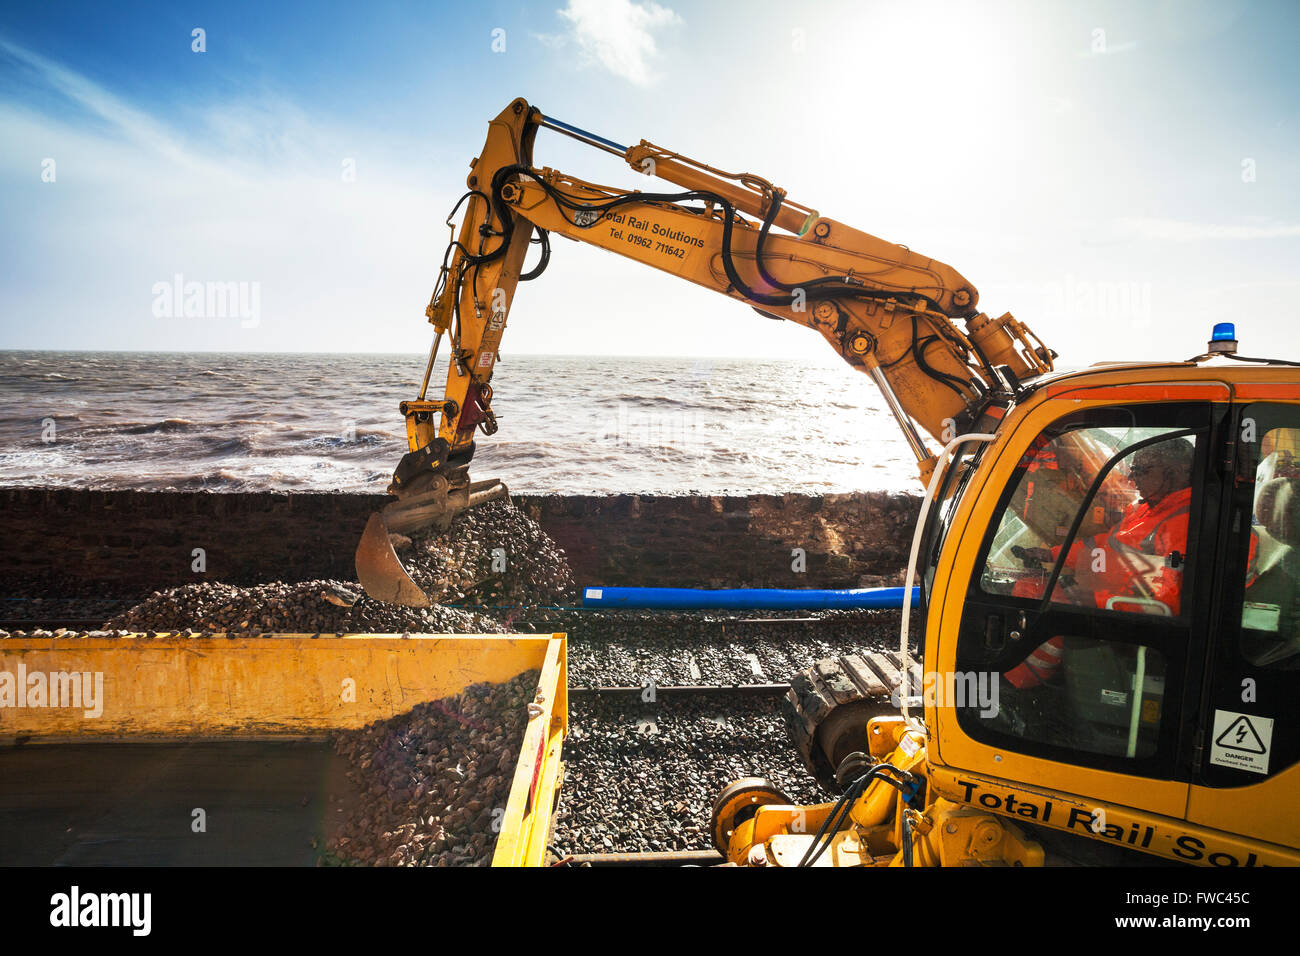 08/02/14 Network Rail Dawlish - repair works continue despite high tides and stormy weather - Stock Image